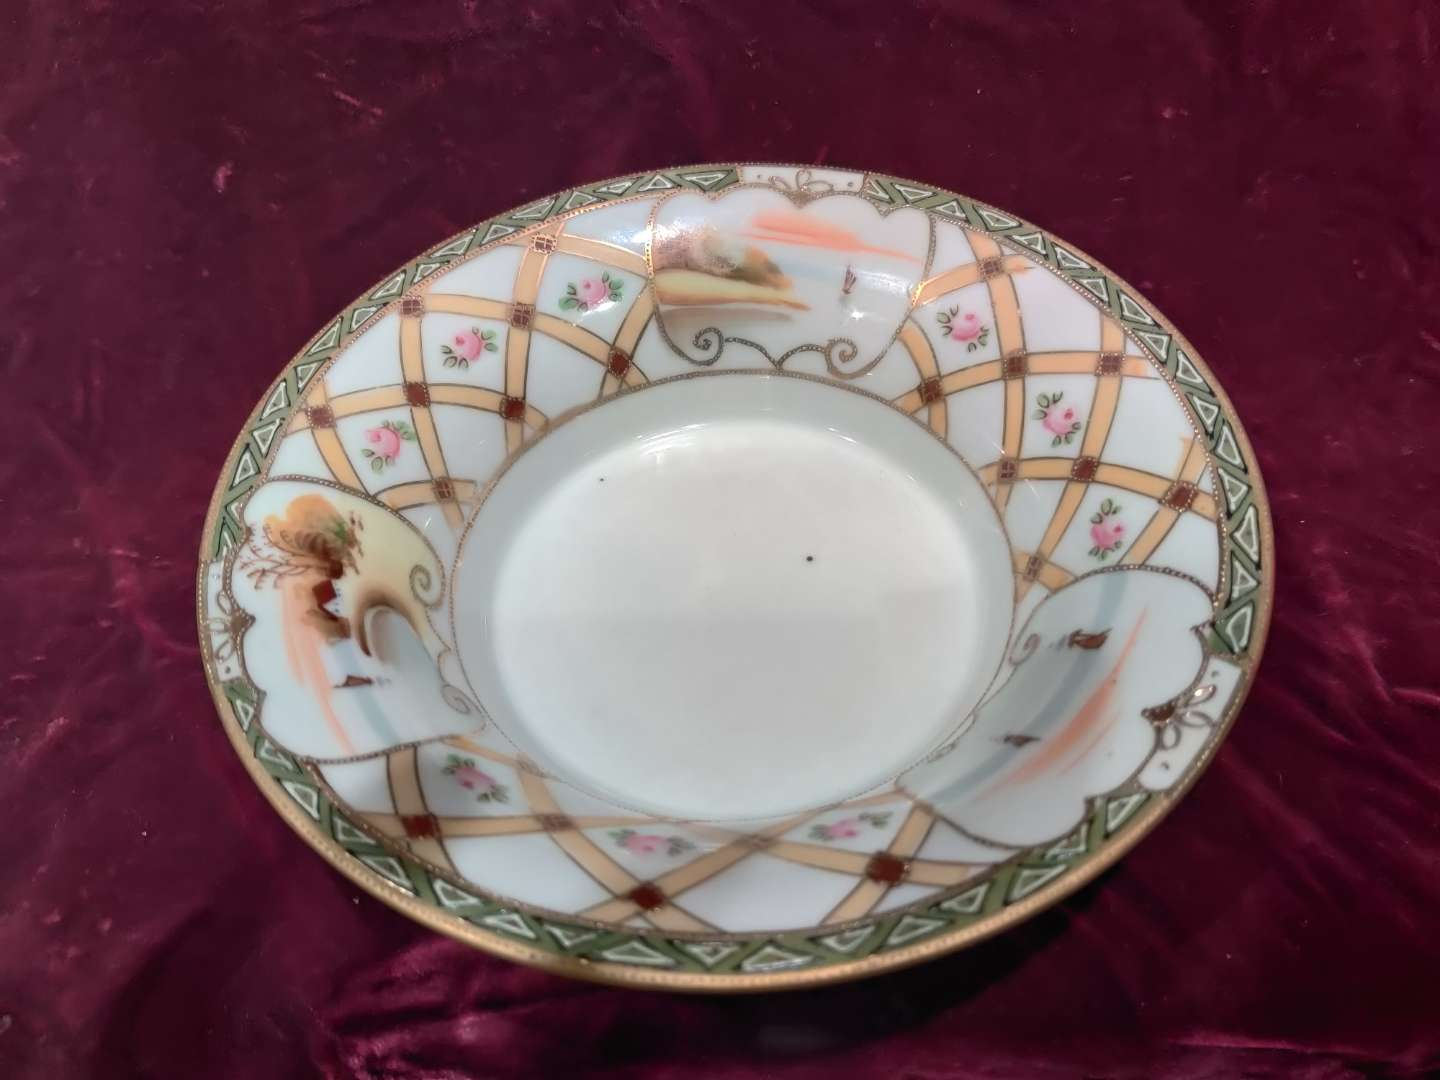 # 73 hand painted early imperial Nippon porcelain bowl 7.5 in in excellent condition